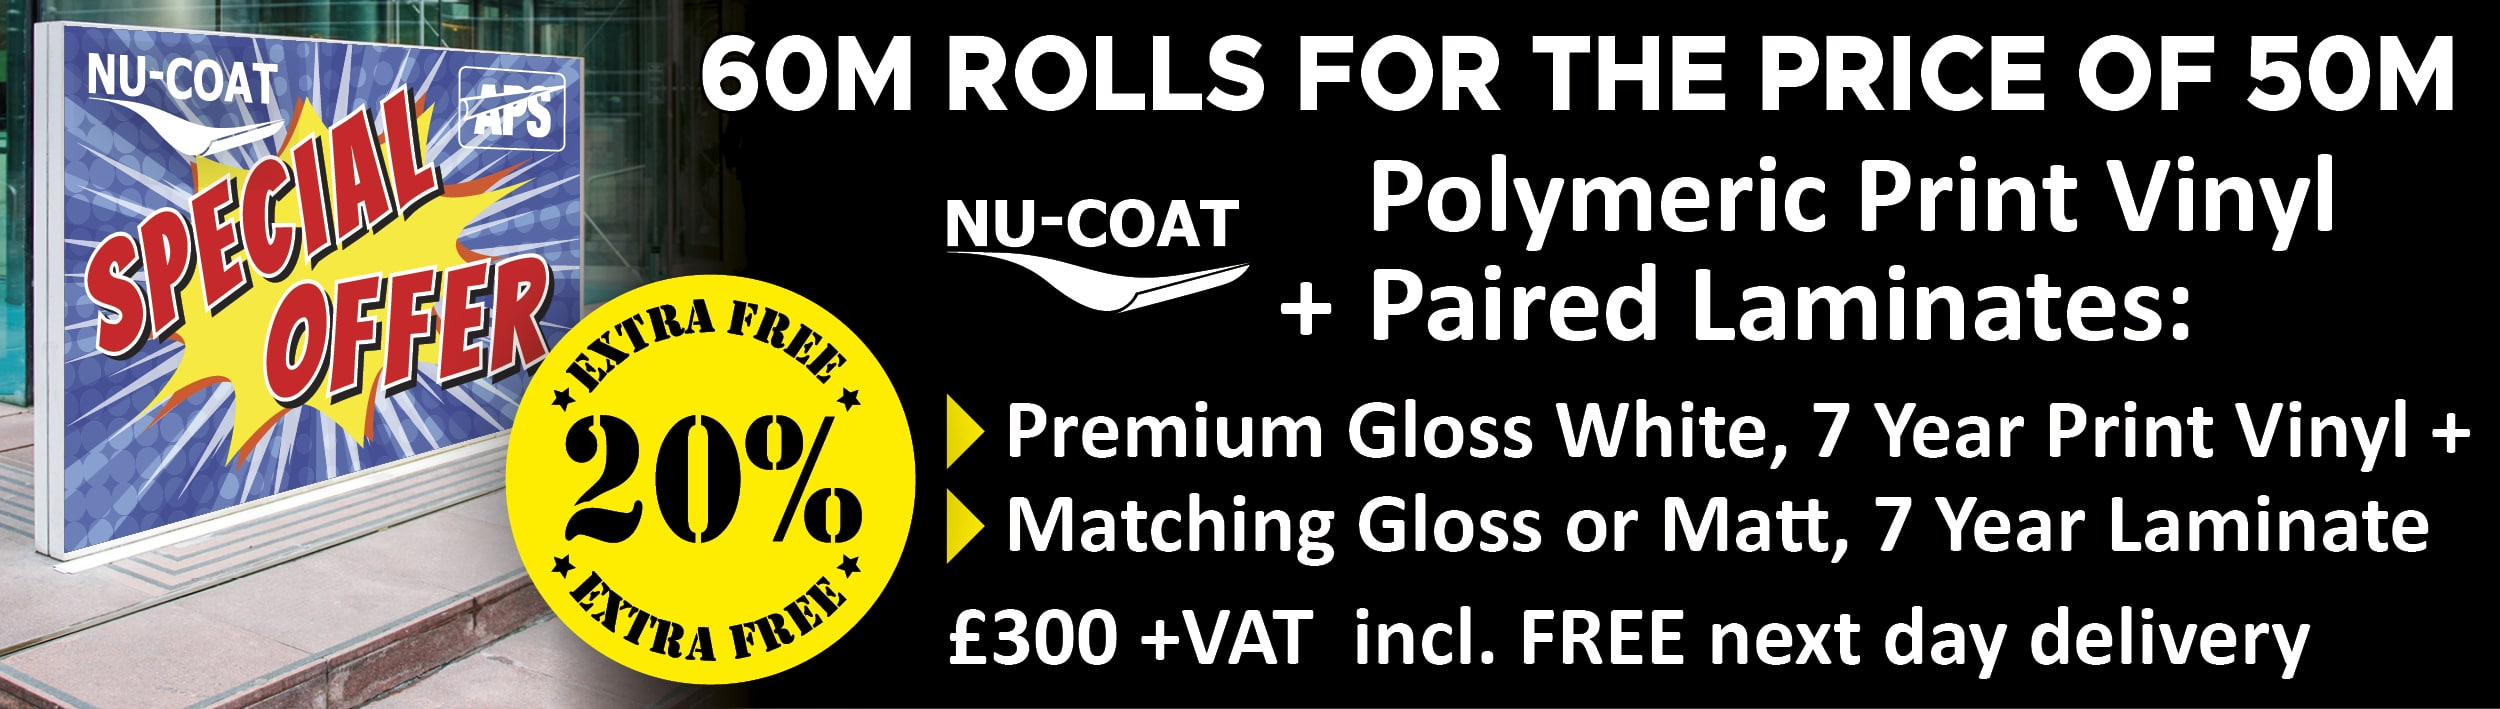 NU-COAT 20% EXTRA MATERIAL FREE bundle deal - Polymeric premium print vinyl PLUS gloss or matt clear laminate only £300 +VAT and includes FREE delivery!